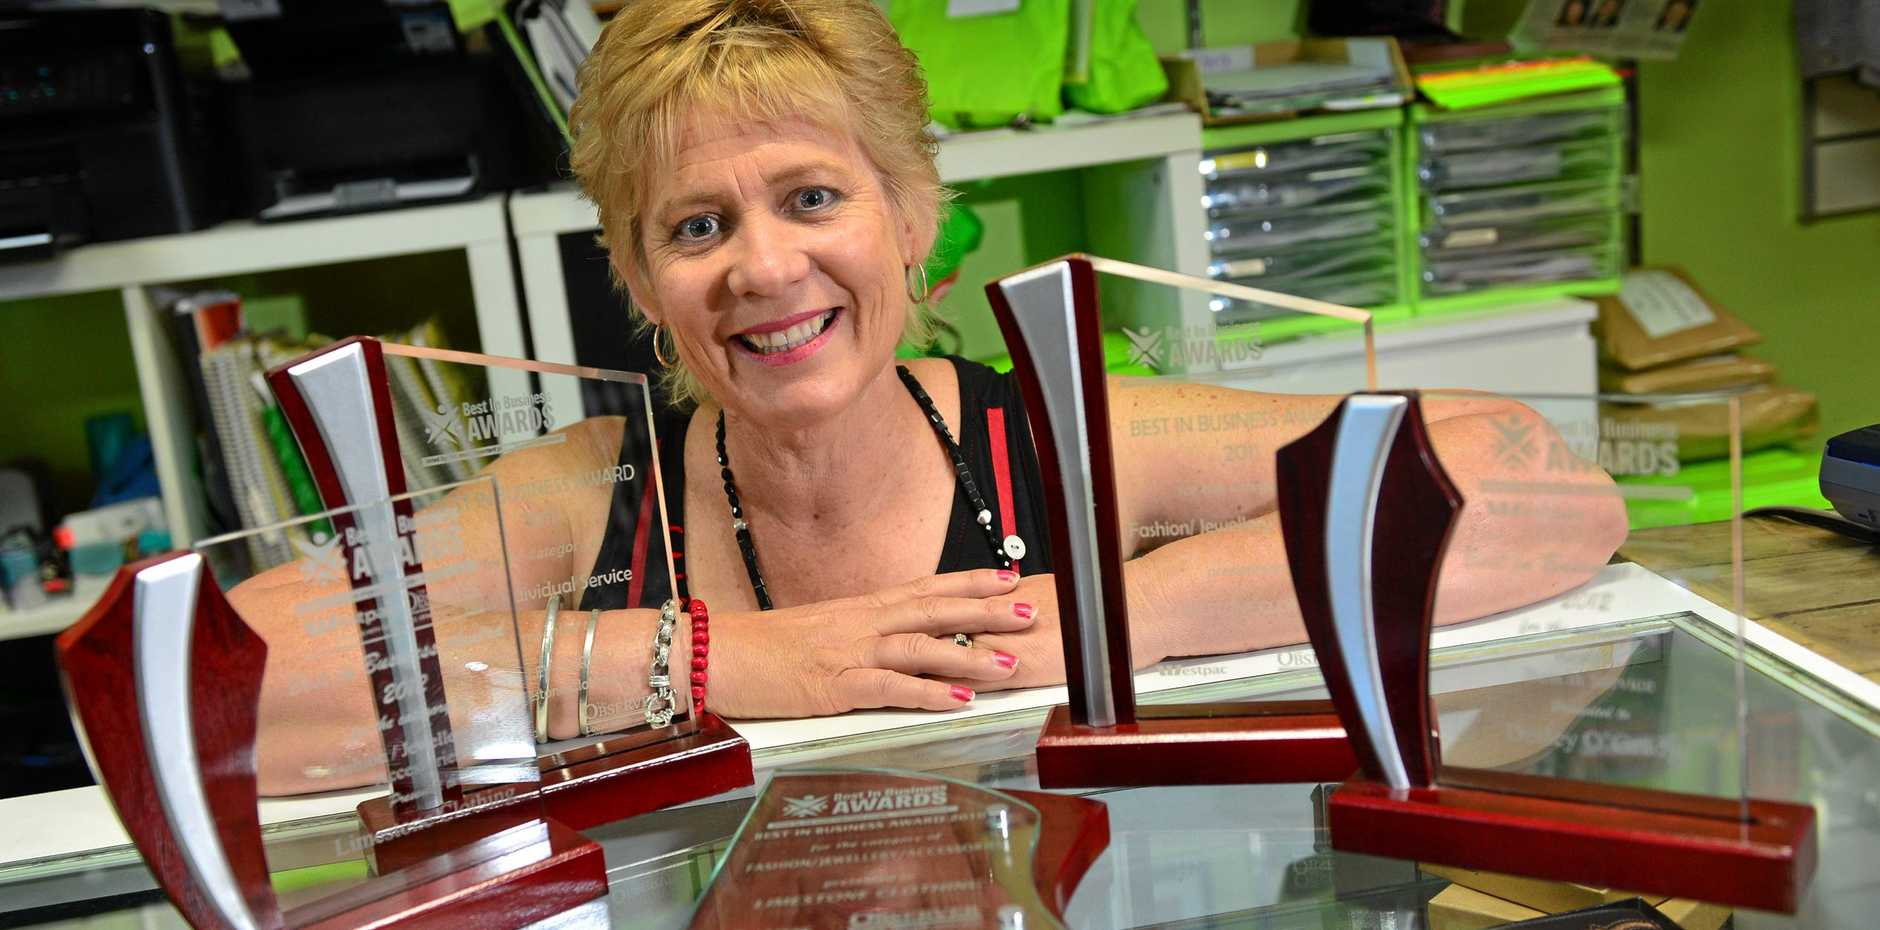 TIME'S UP: Limestone Clothing owner Desley O'Grady with awards collected by the store over the years.